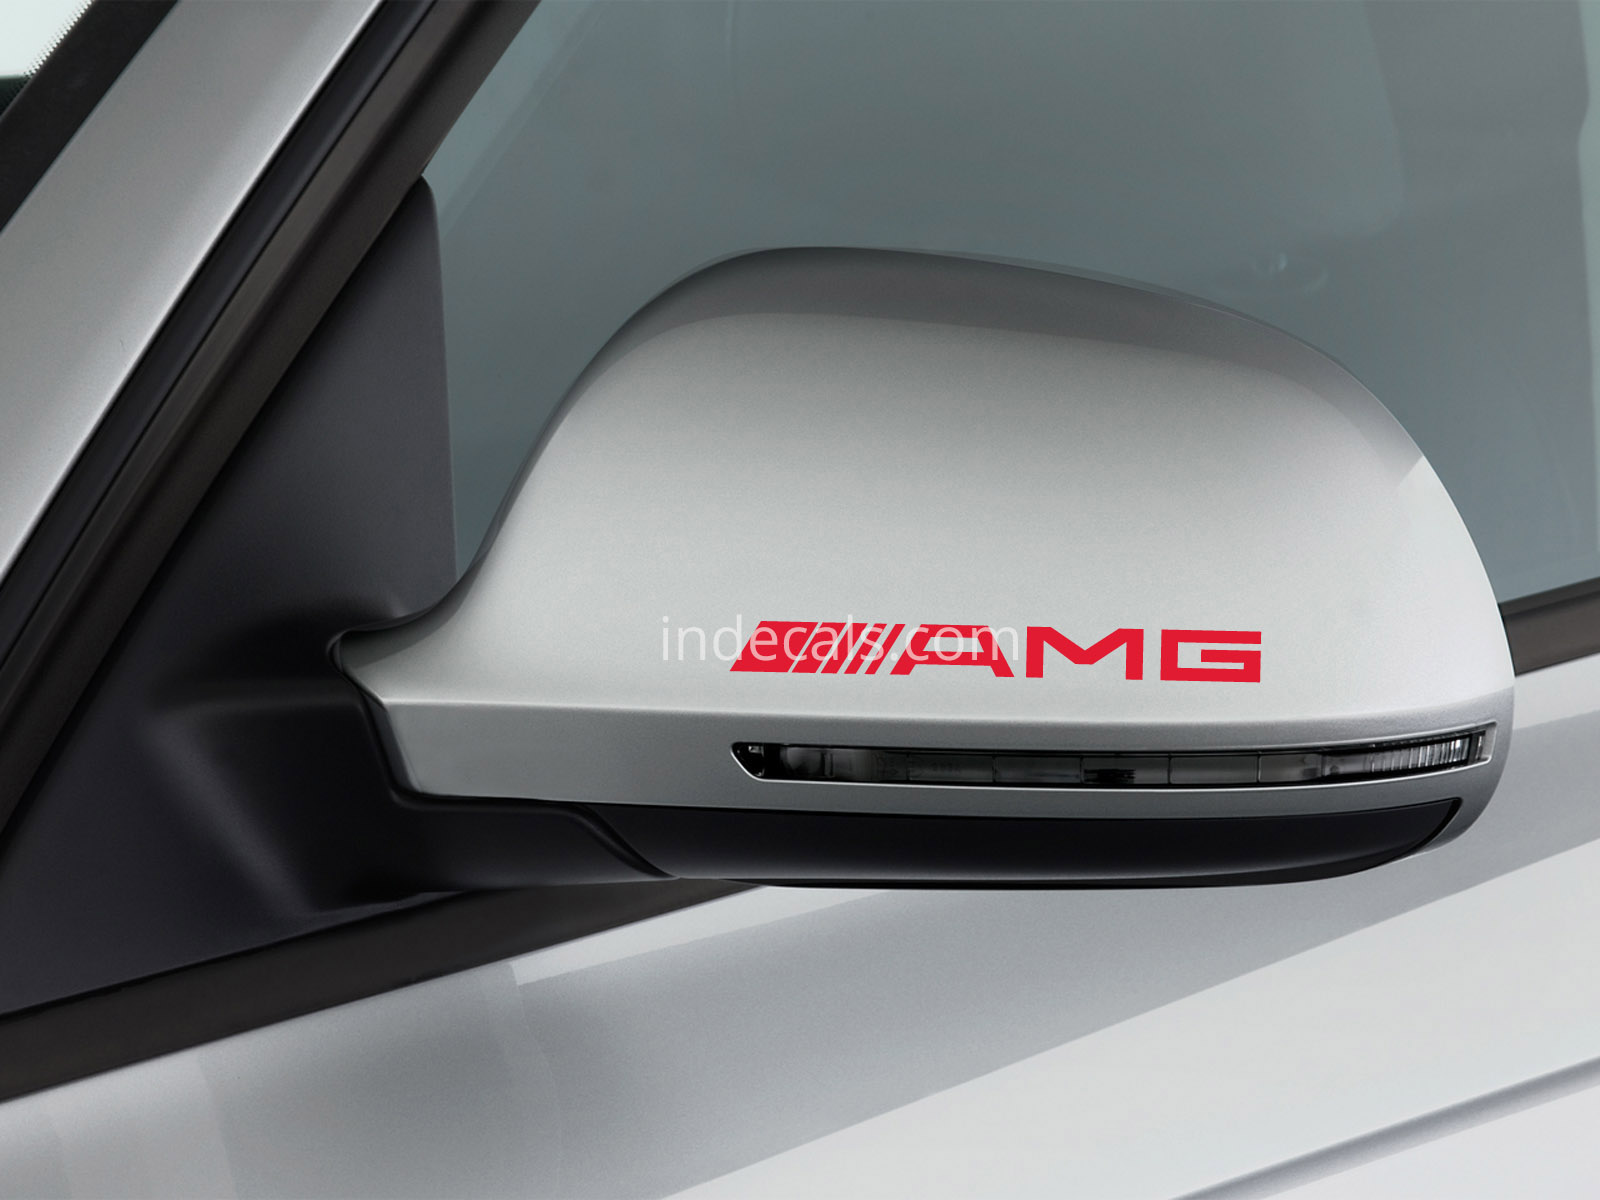 3 x AMG Stickers for Mirrors - White